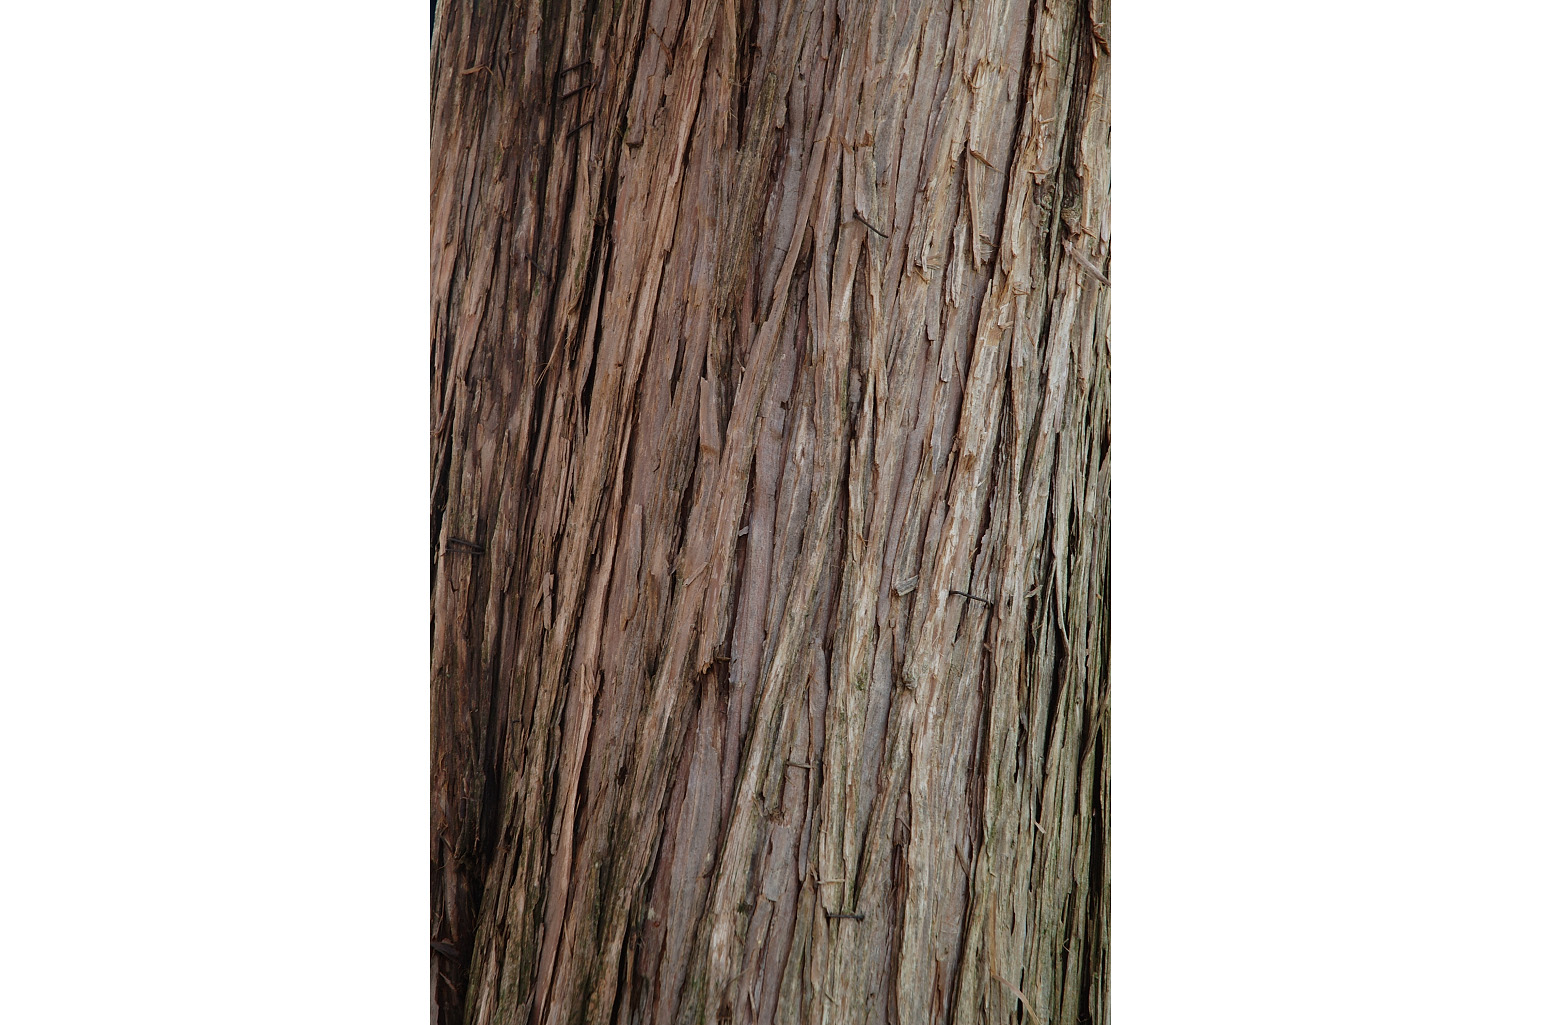 Fibrous bark of the trunk, flaking in vertical strips